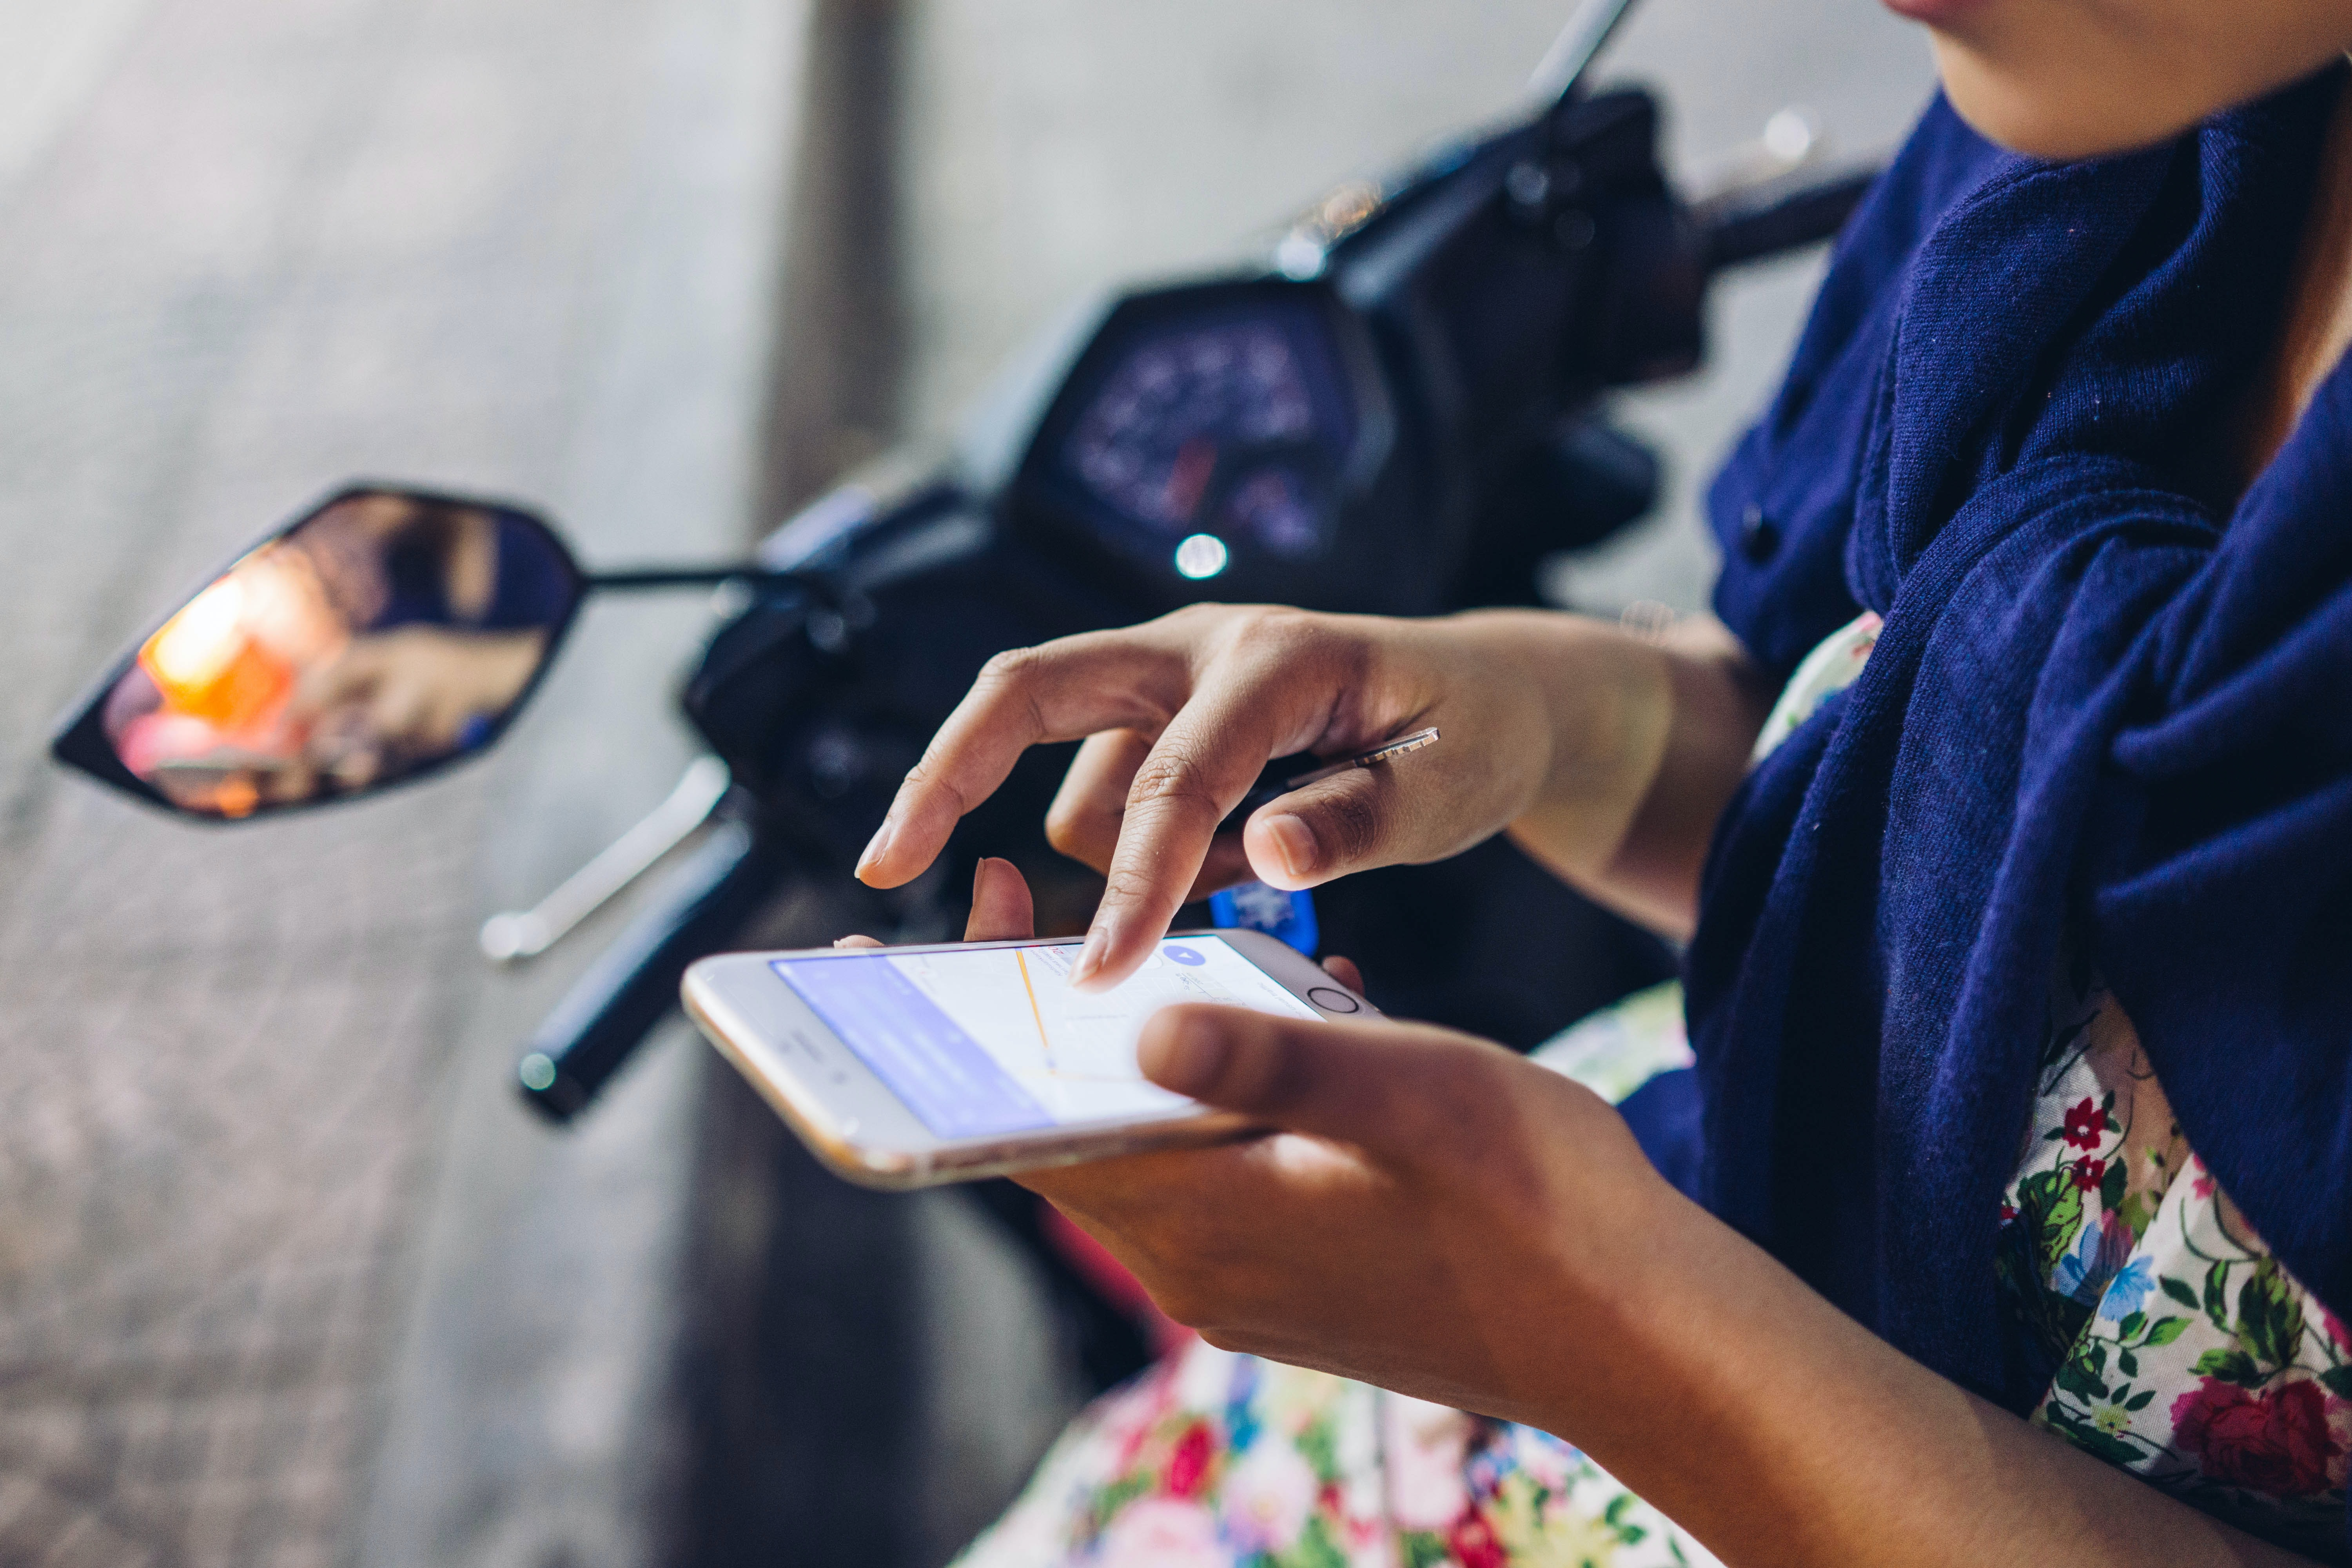 A woman in a floral dress with a blue scarf, sitting on a motor bike looking at Google Maps on her smartphone.